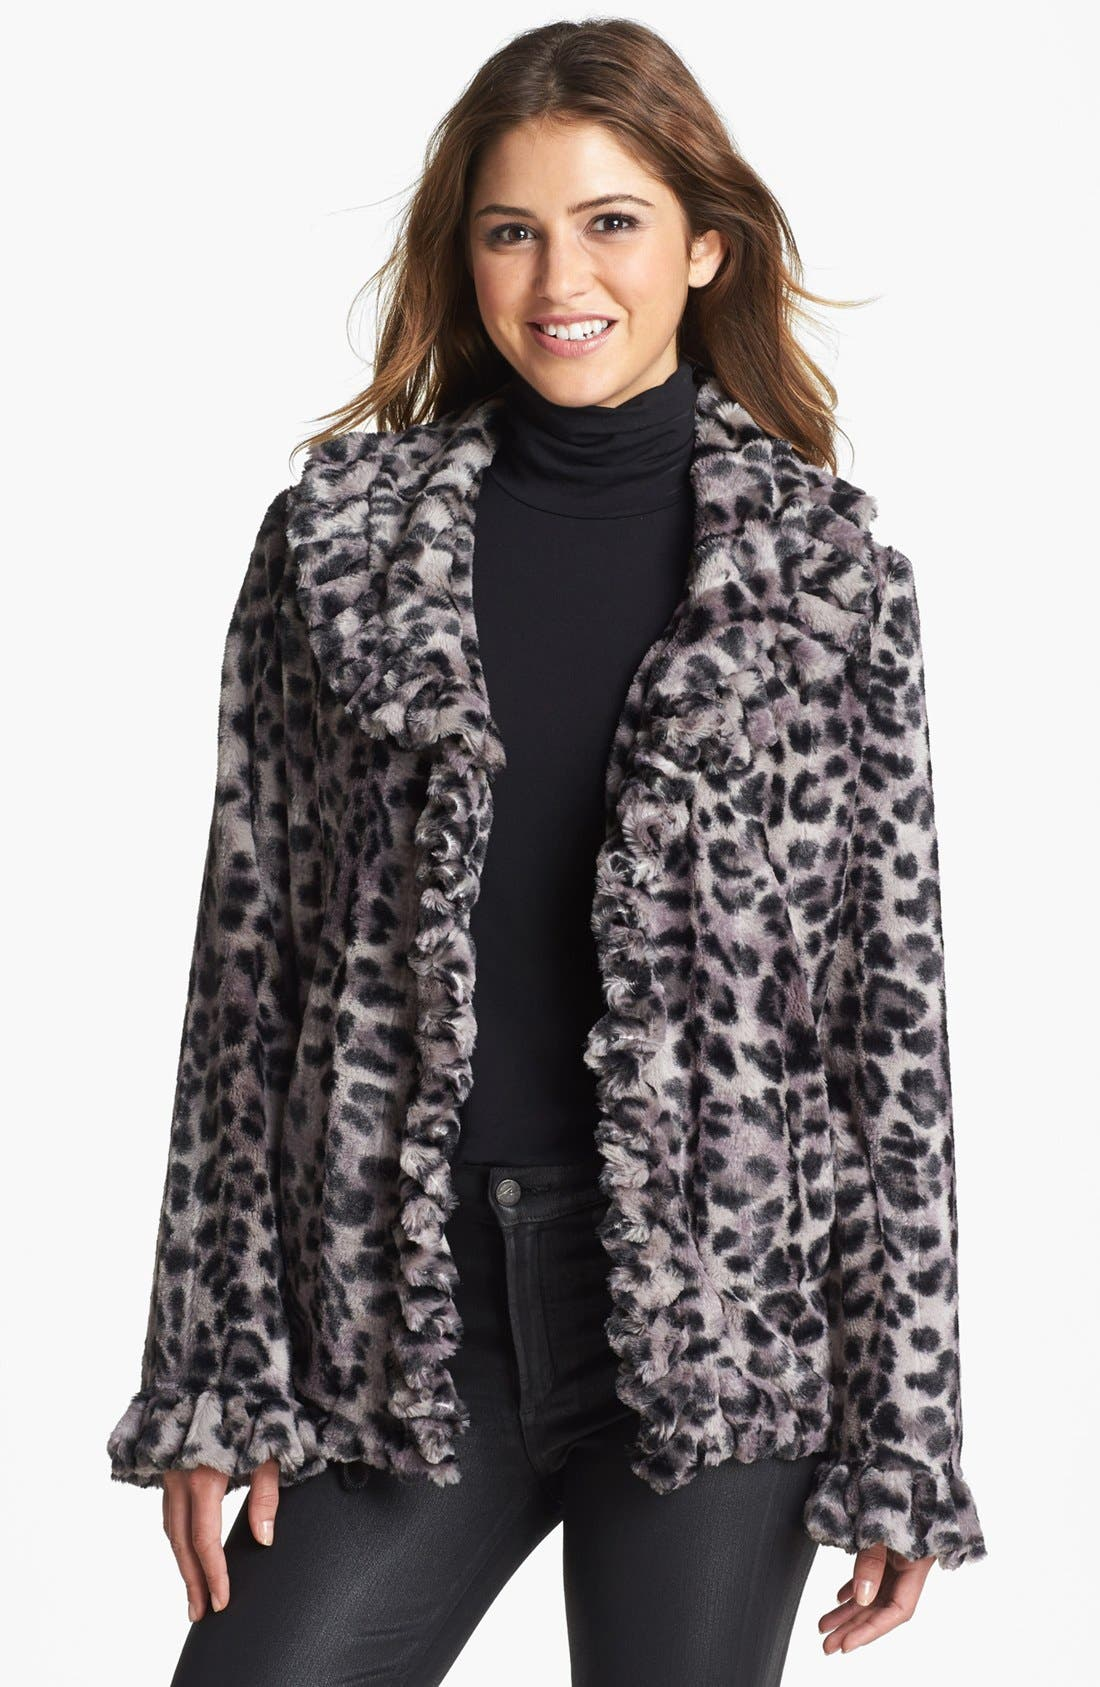 Alternate Image 1 Selected - Damselle Ruffle Trim Faux Fur Jacket (Online Only)